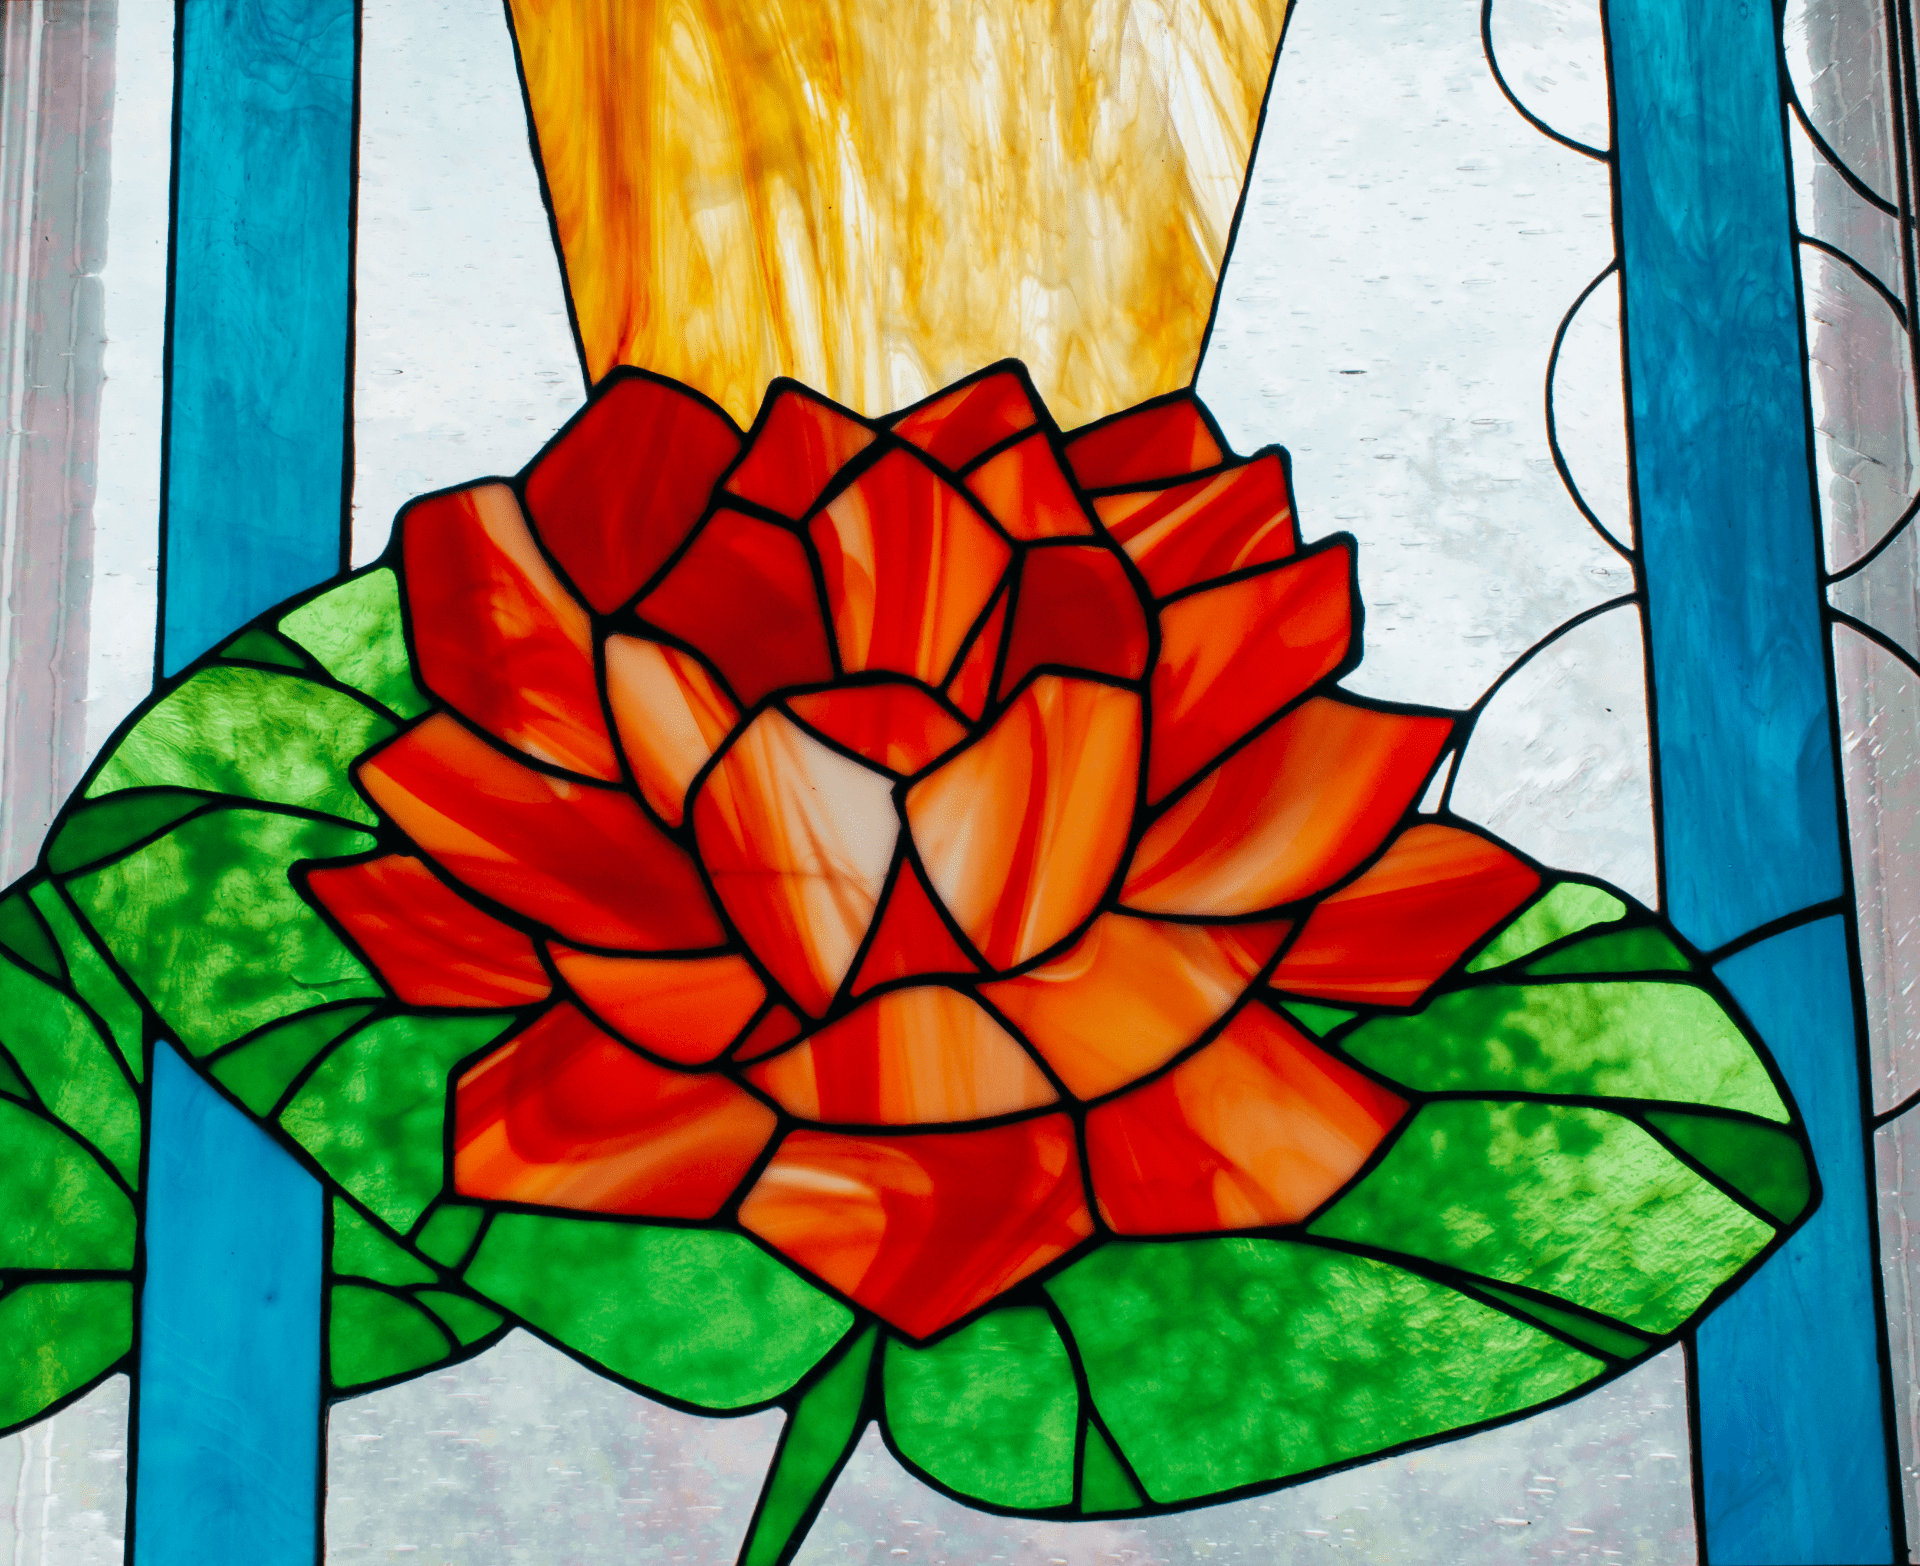 stained glass of a rose on green leaves with gold sun rays in the back and blue stripes along the side.